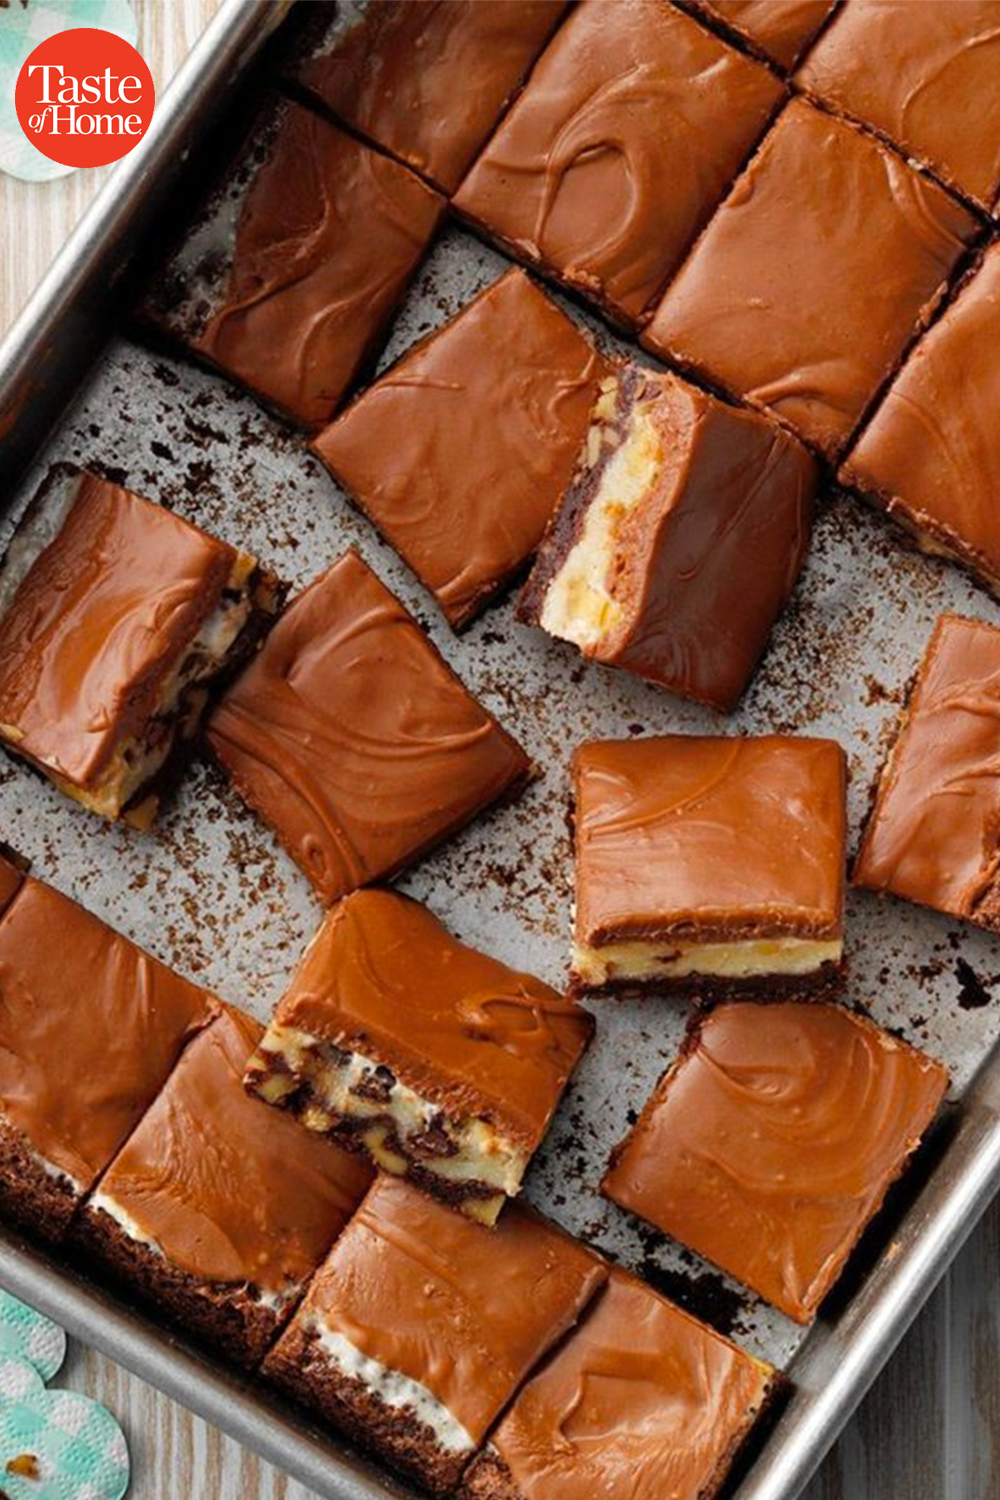 30 Dessert Recipes Your Guests Are Secretly Hoping For